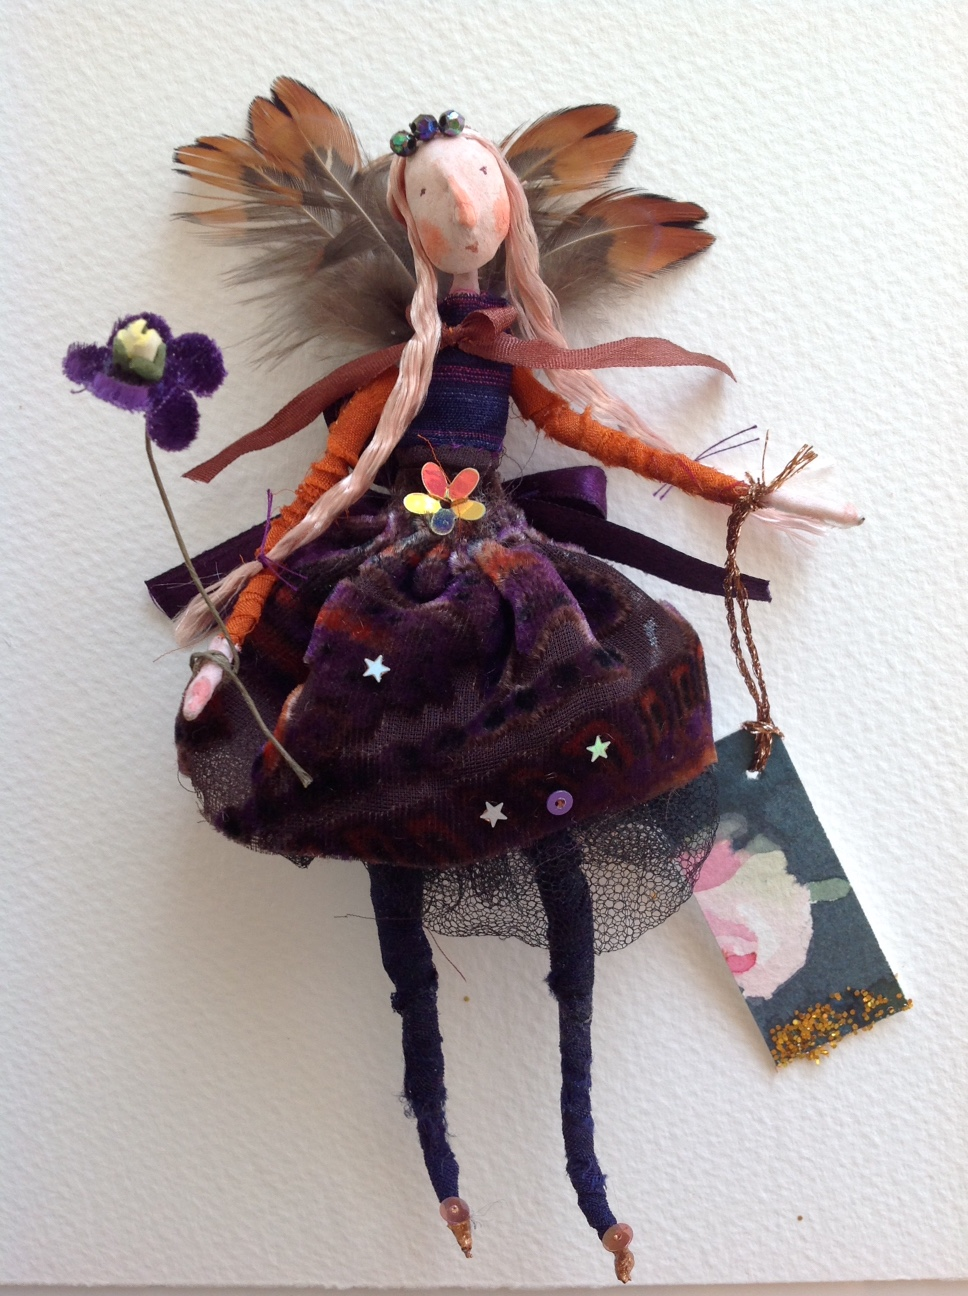 MISS VELVET A 14cm fairy dresse in silk tulle and velvet. She has pheasant feather wings and a hand painted name tag. £ 25 plus p&p.